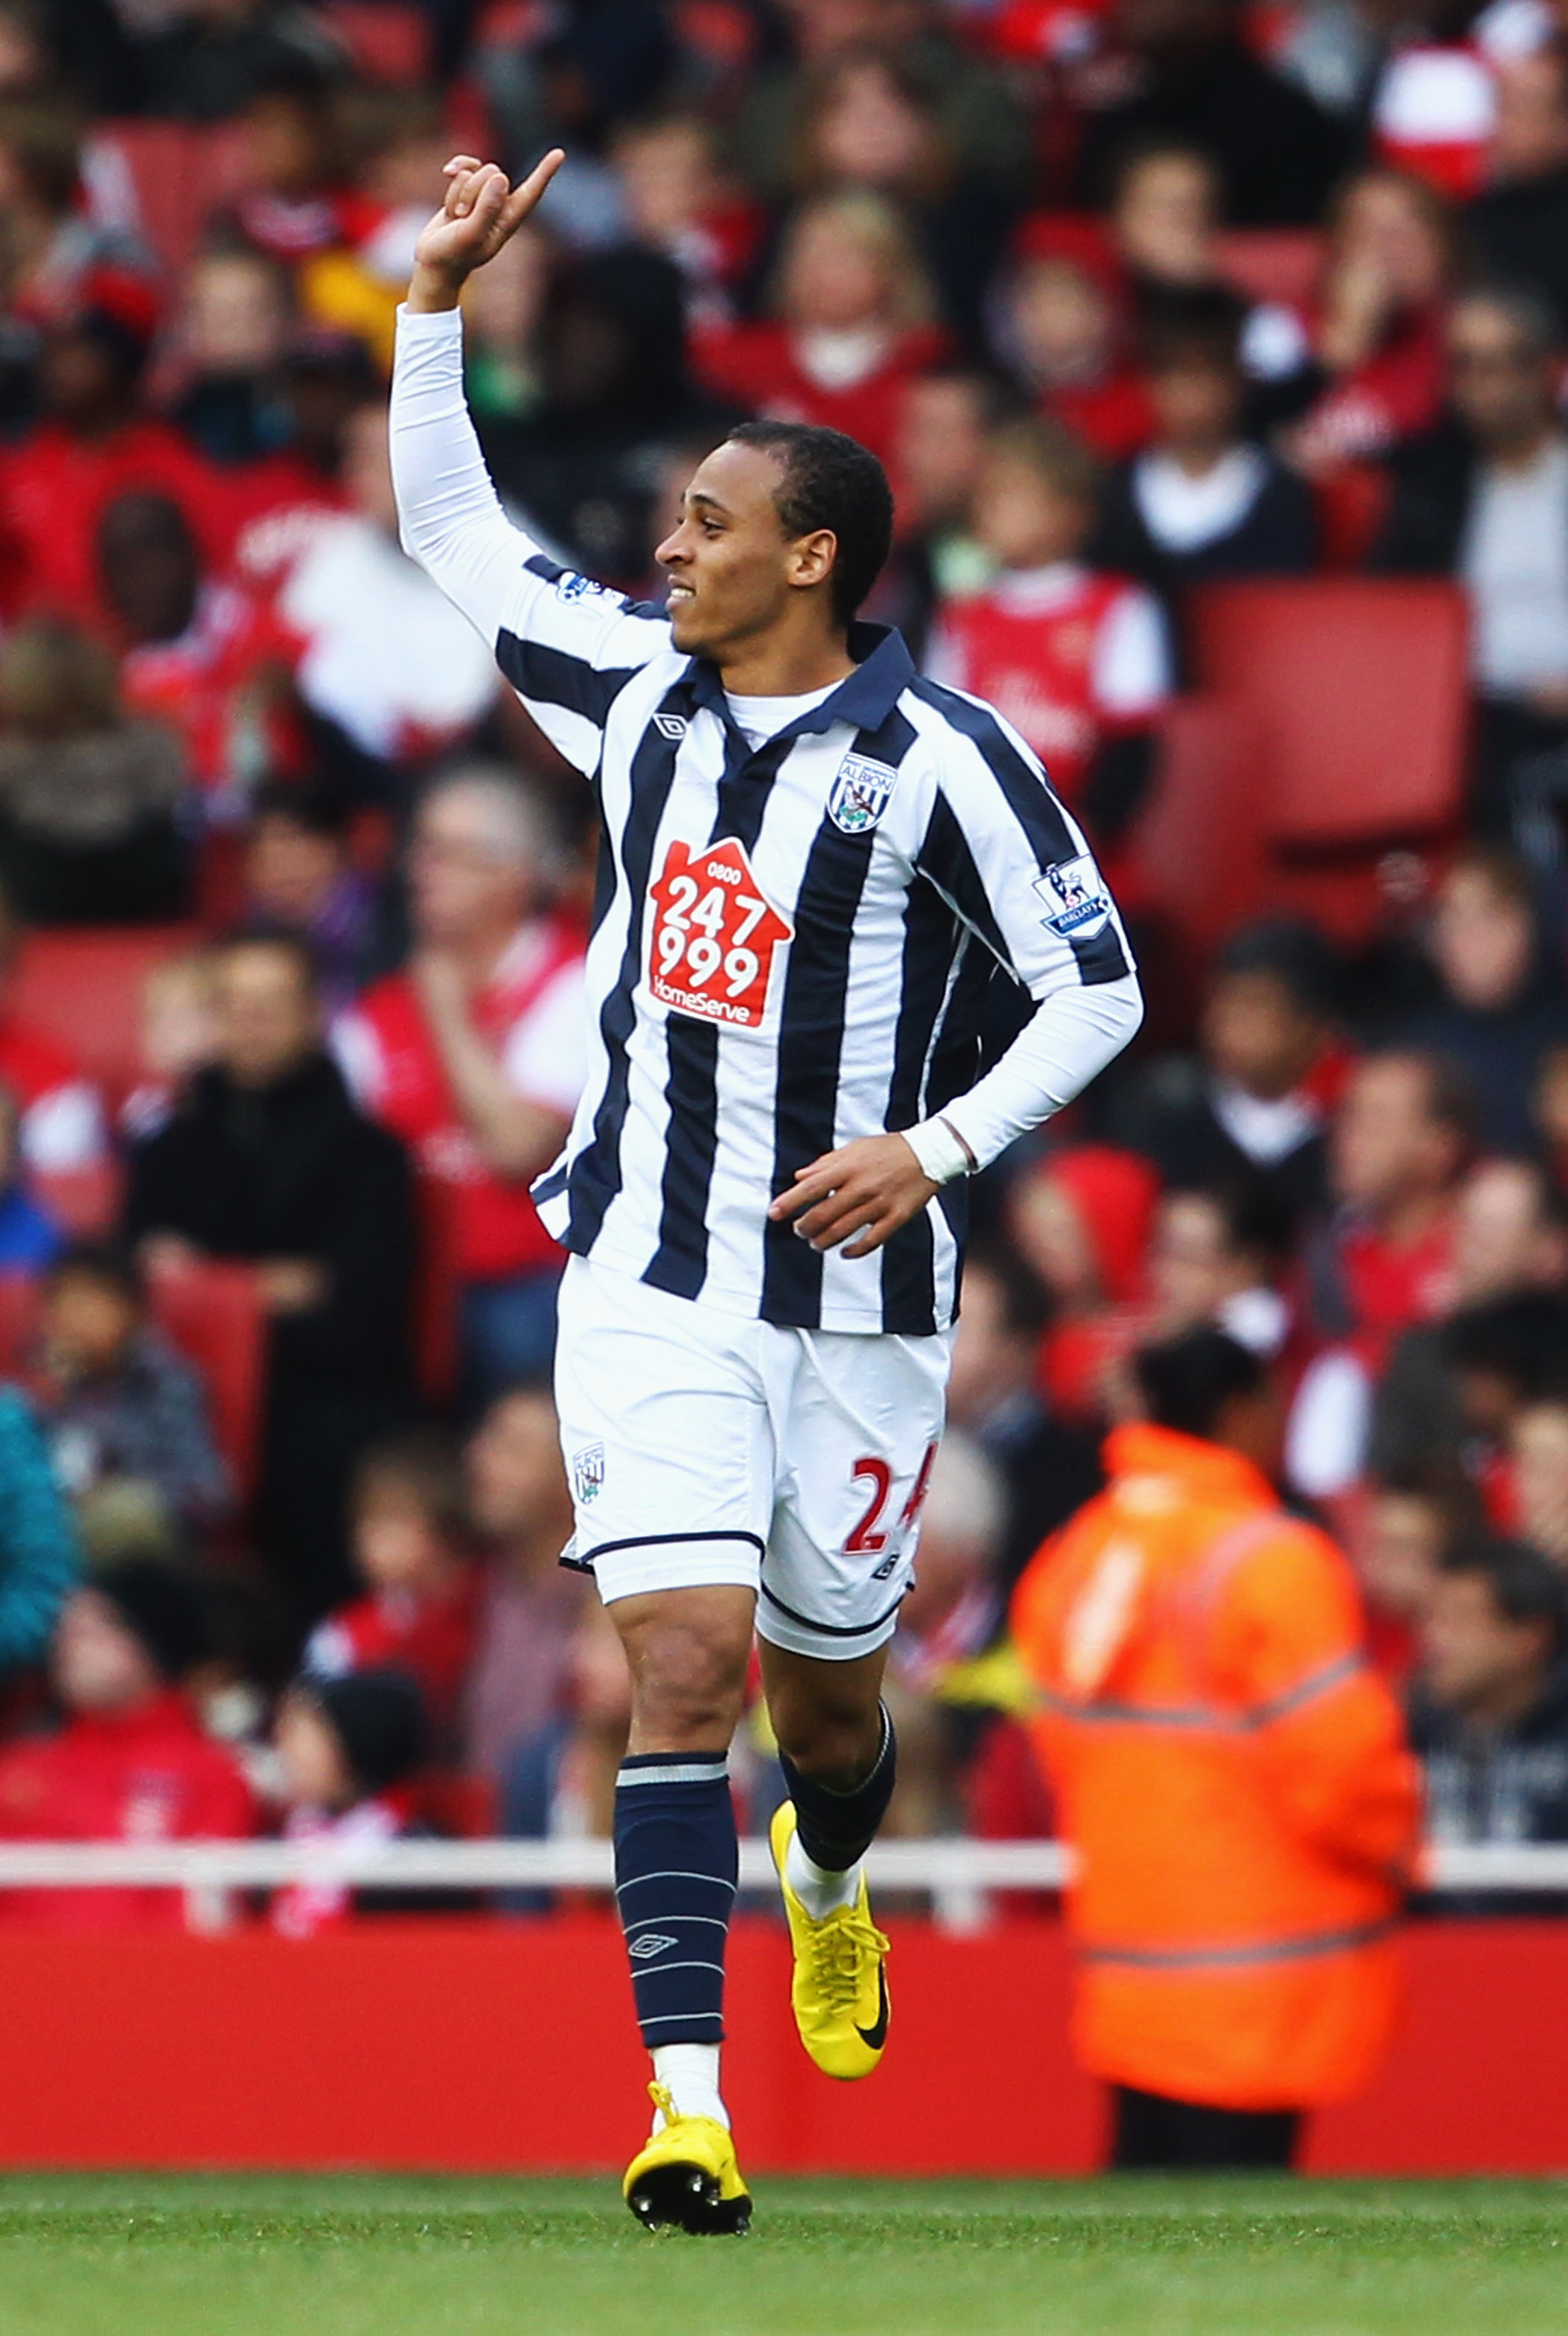 LONDON, ENGLAND - SEPTEMBER 25:  Peter Odemwingie of West Bromwich Albion celebrates as he scores their first goal during the Barclays Premier League match between Arsenal and West Bromwich Albion at the Emirates Stadium on September 25, 2010 in London, E